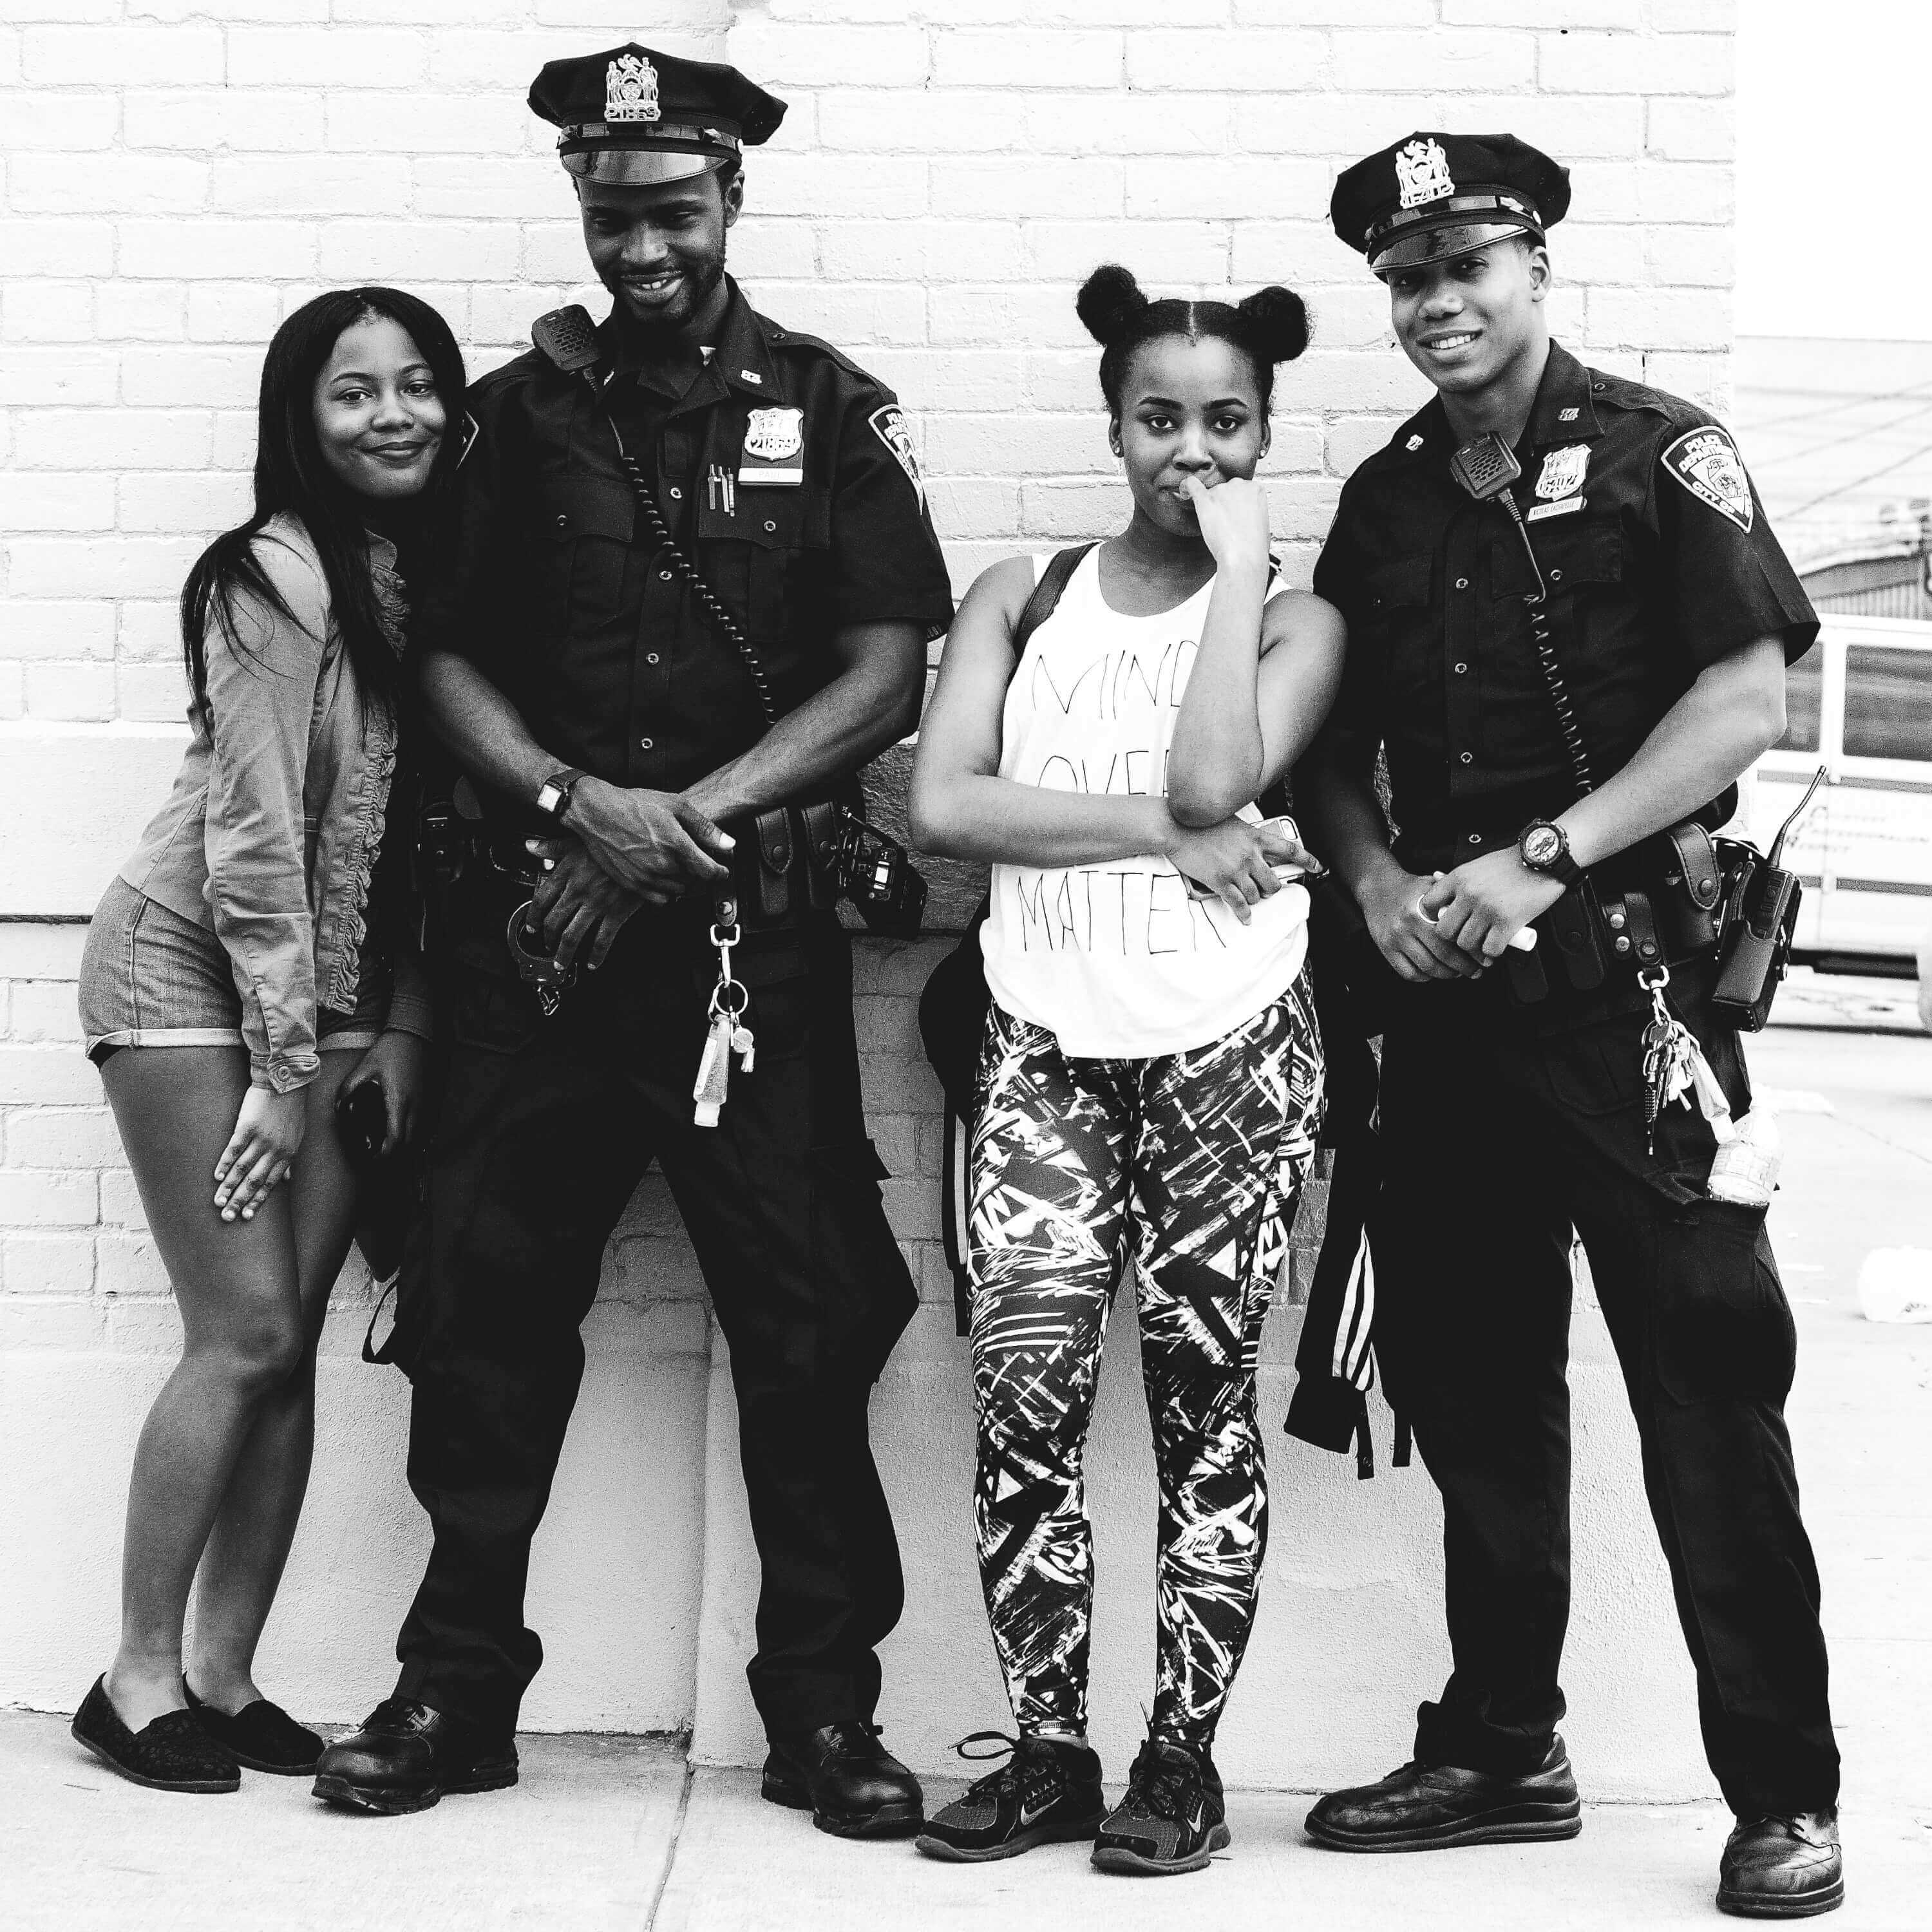 Posing with the Police